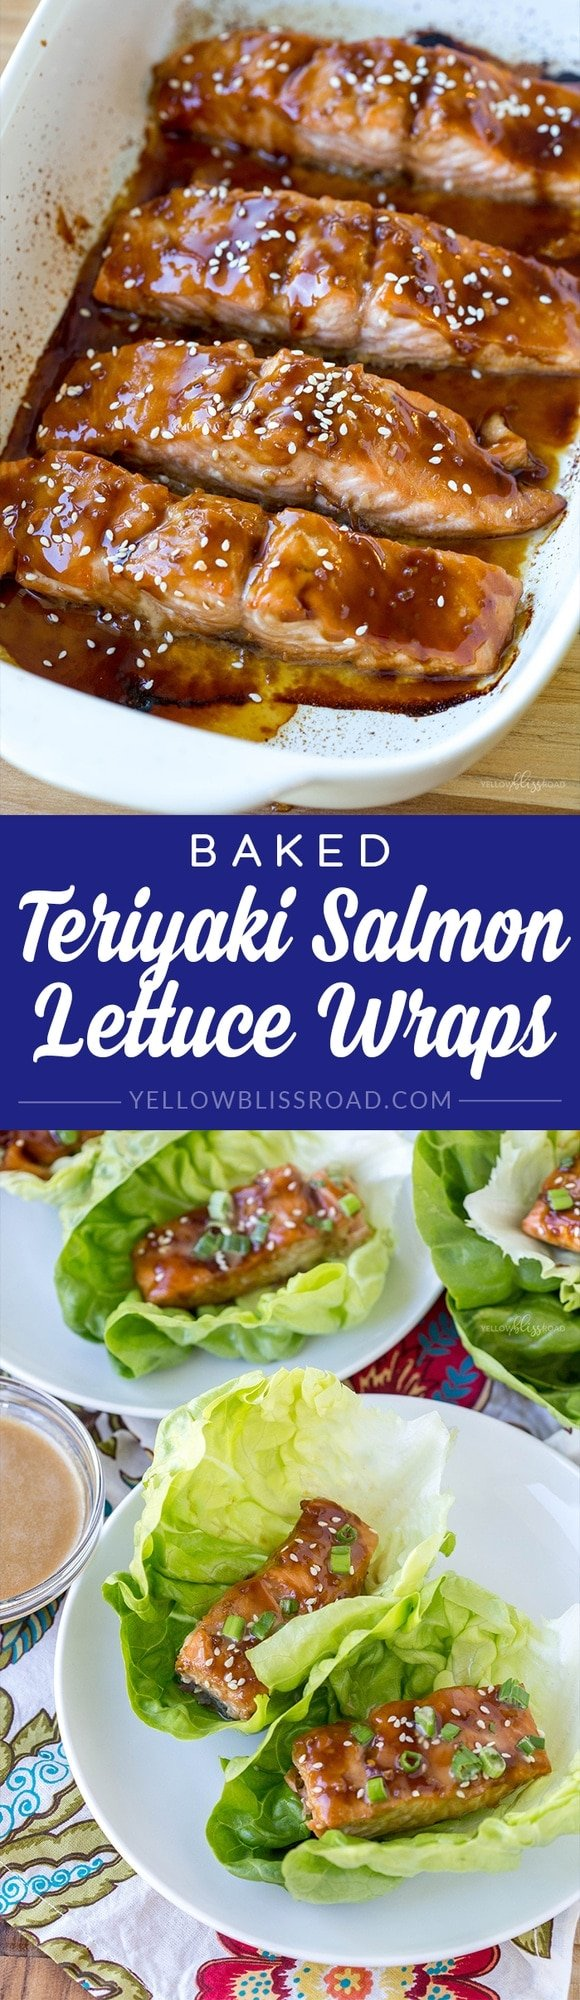 Tender, flaky pieces of Baked Teriyaki Salmon are nestled in crisp lettuce wraps. A healthy and light protein-packed meal for lunch or dinner.